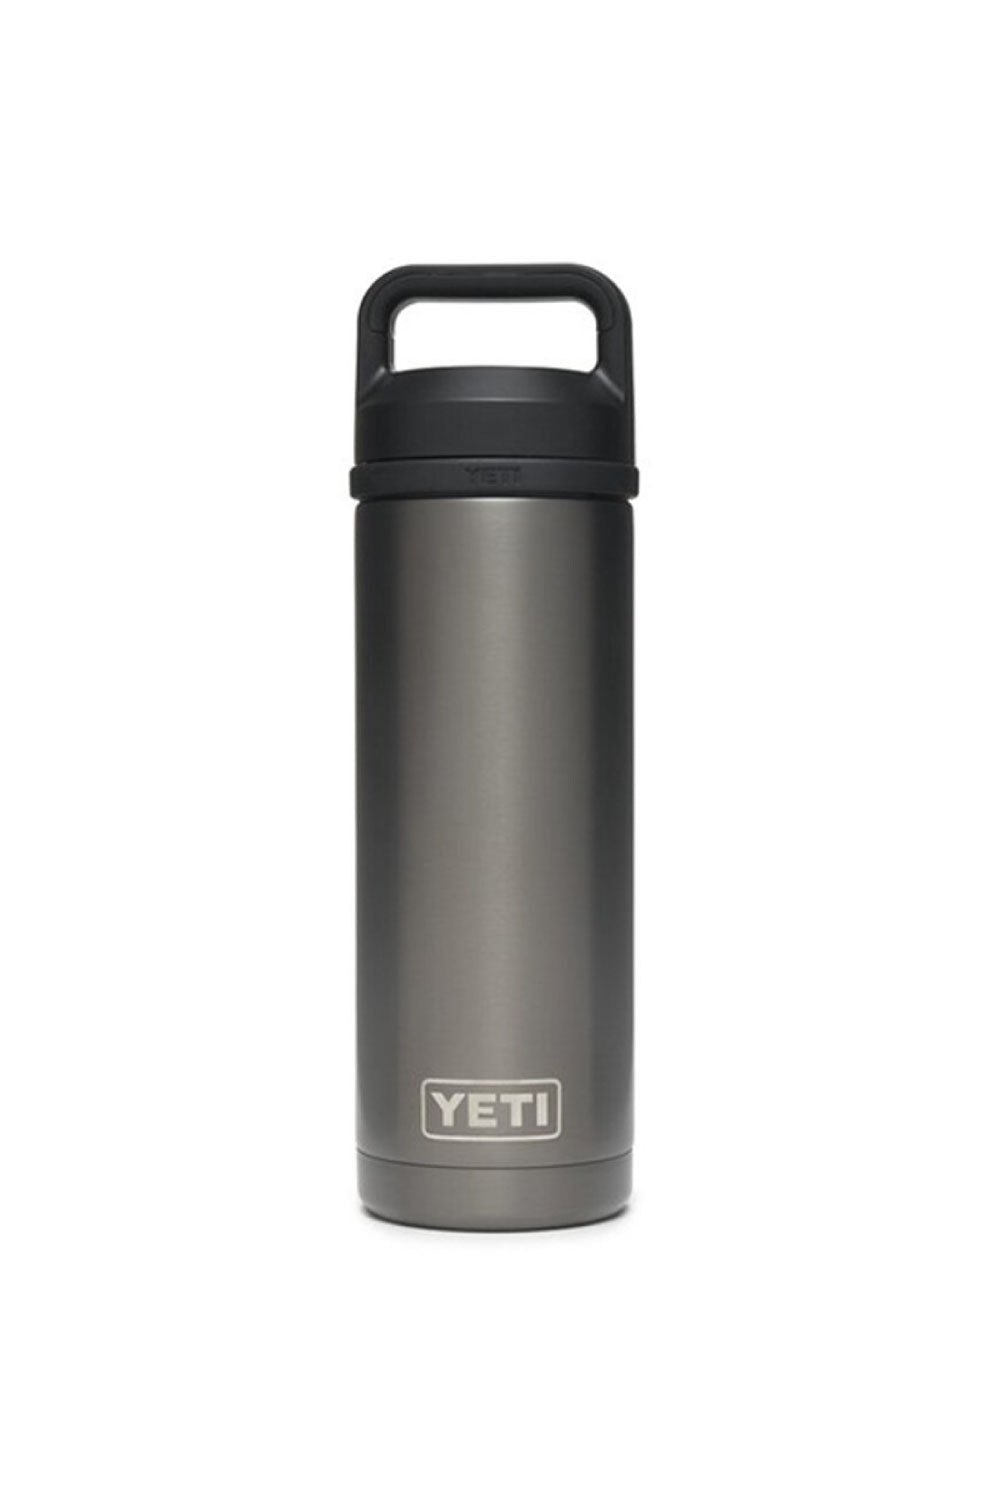 YETI Rambler PVD 18oz Bottle